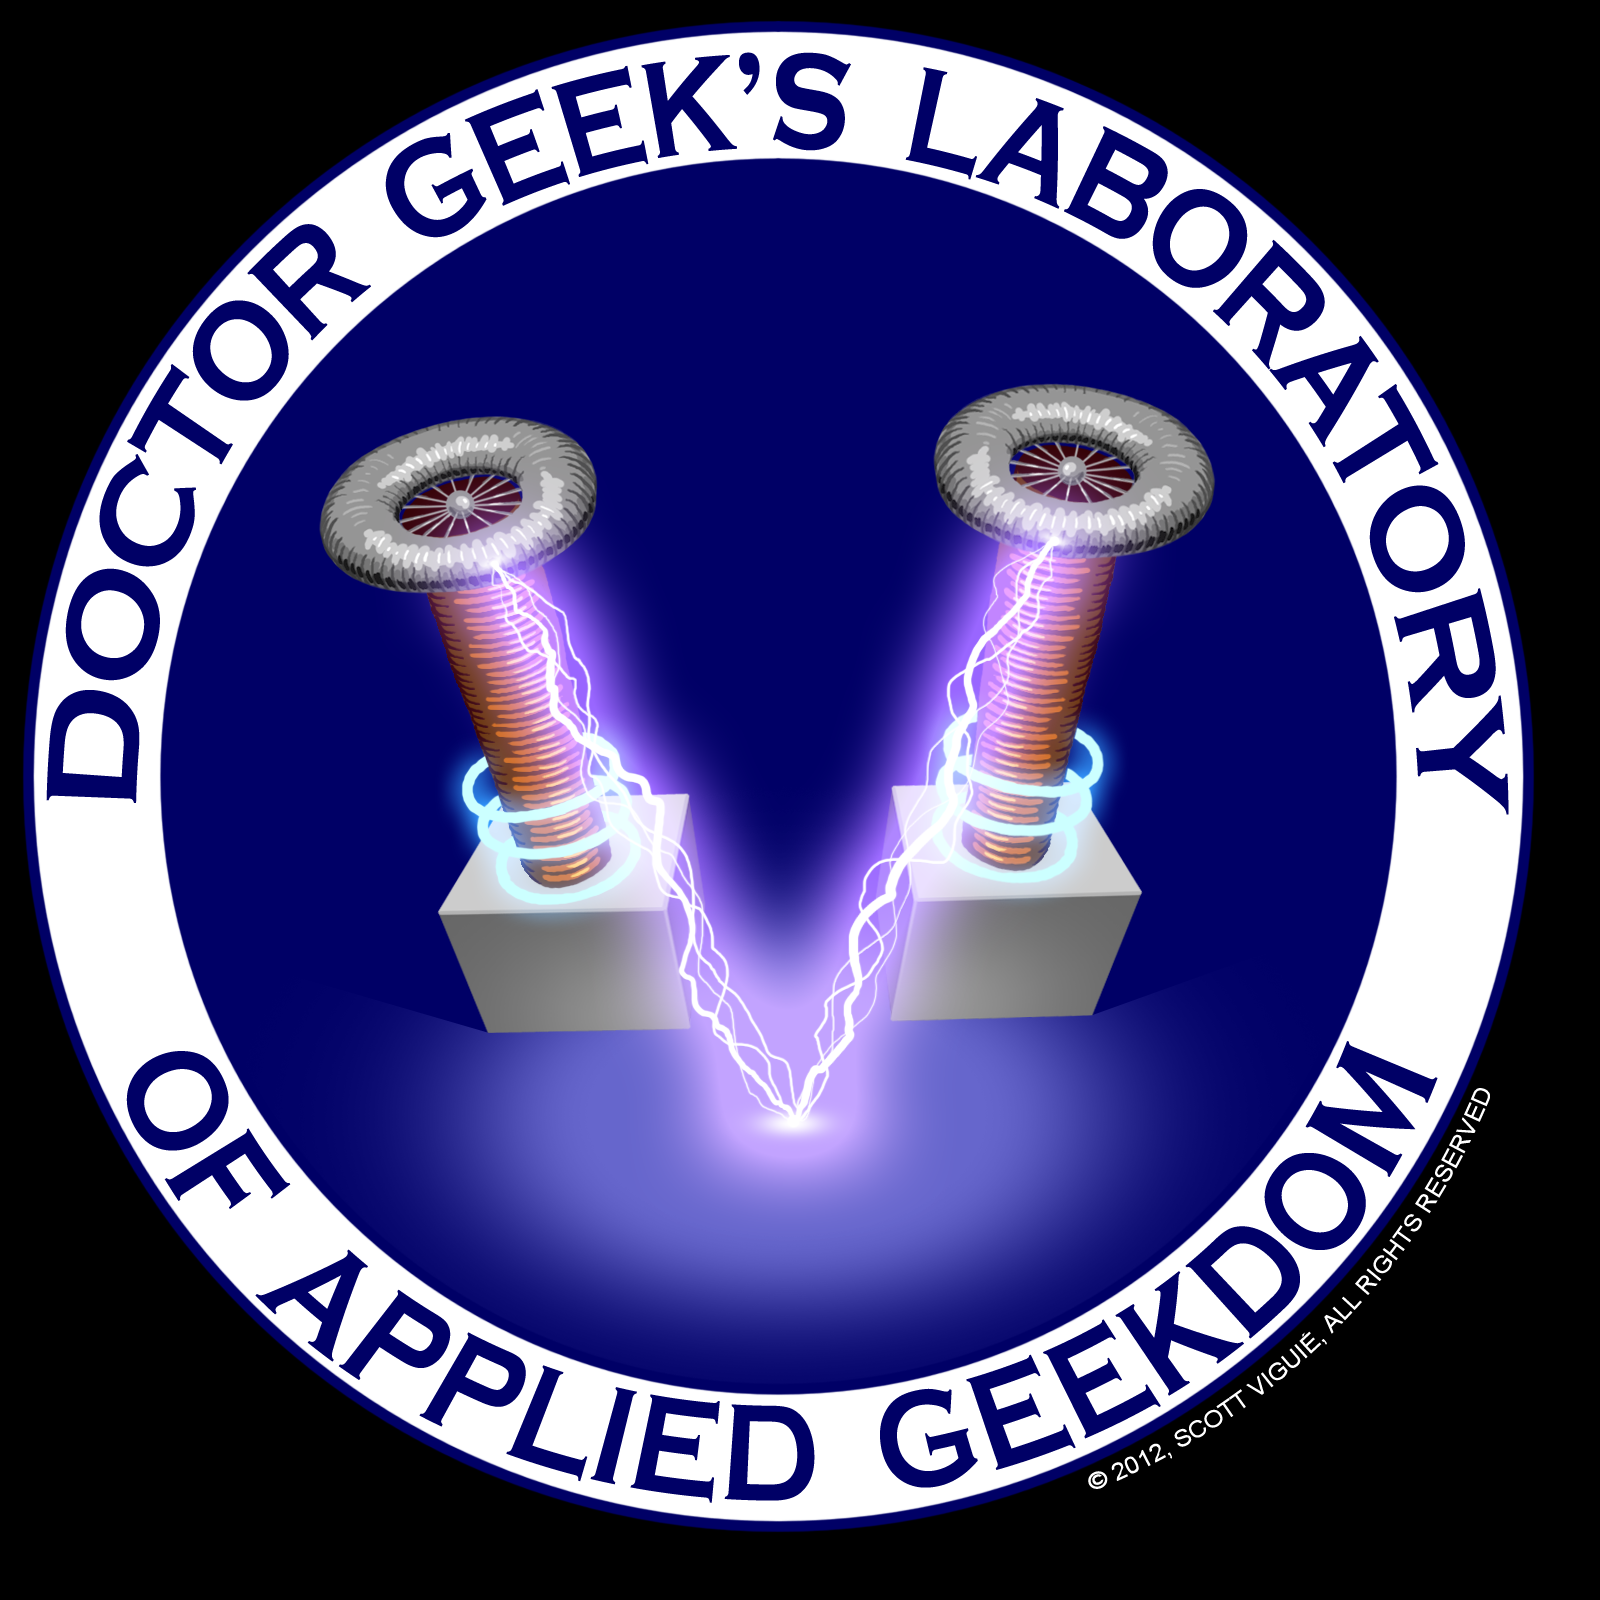 Doctor Geek's Laboratory